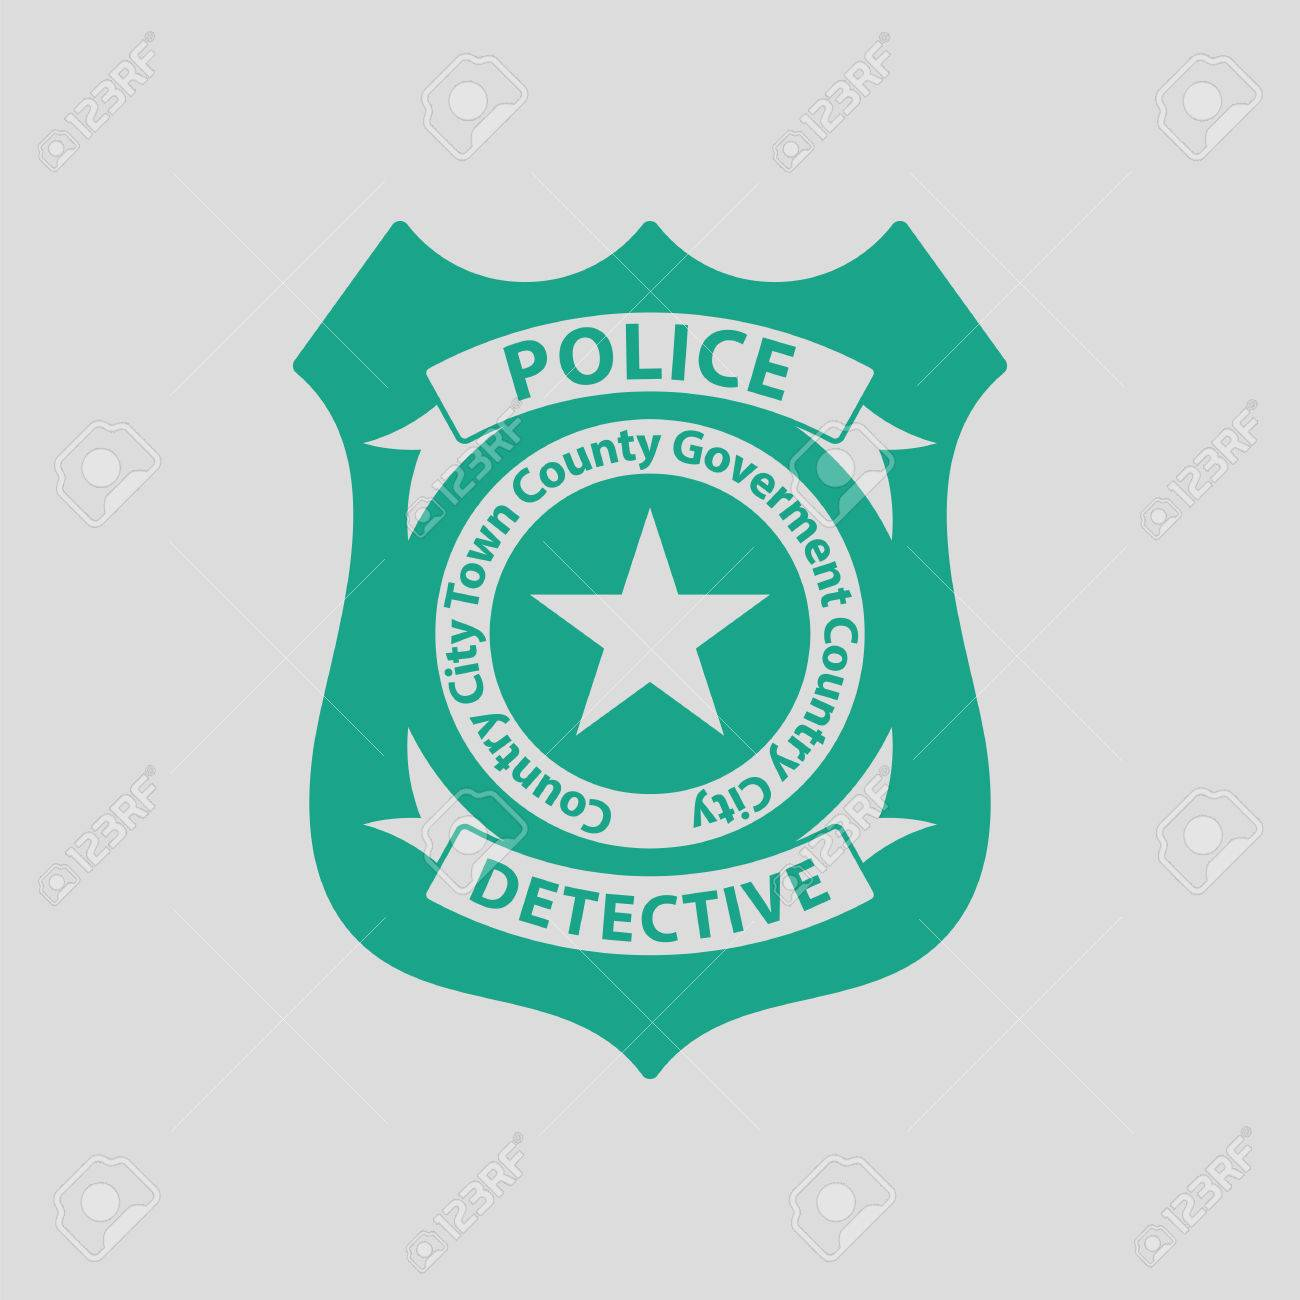 Police Badge Icon Gray Background With Green Vector Illustration